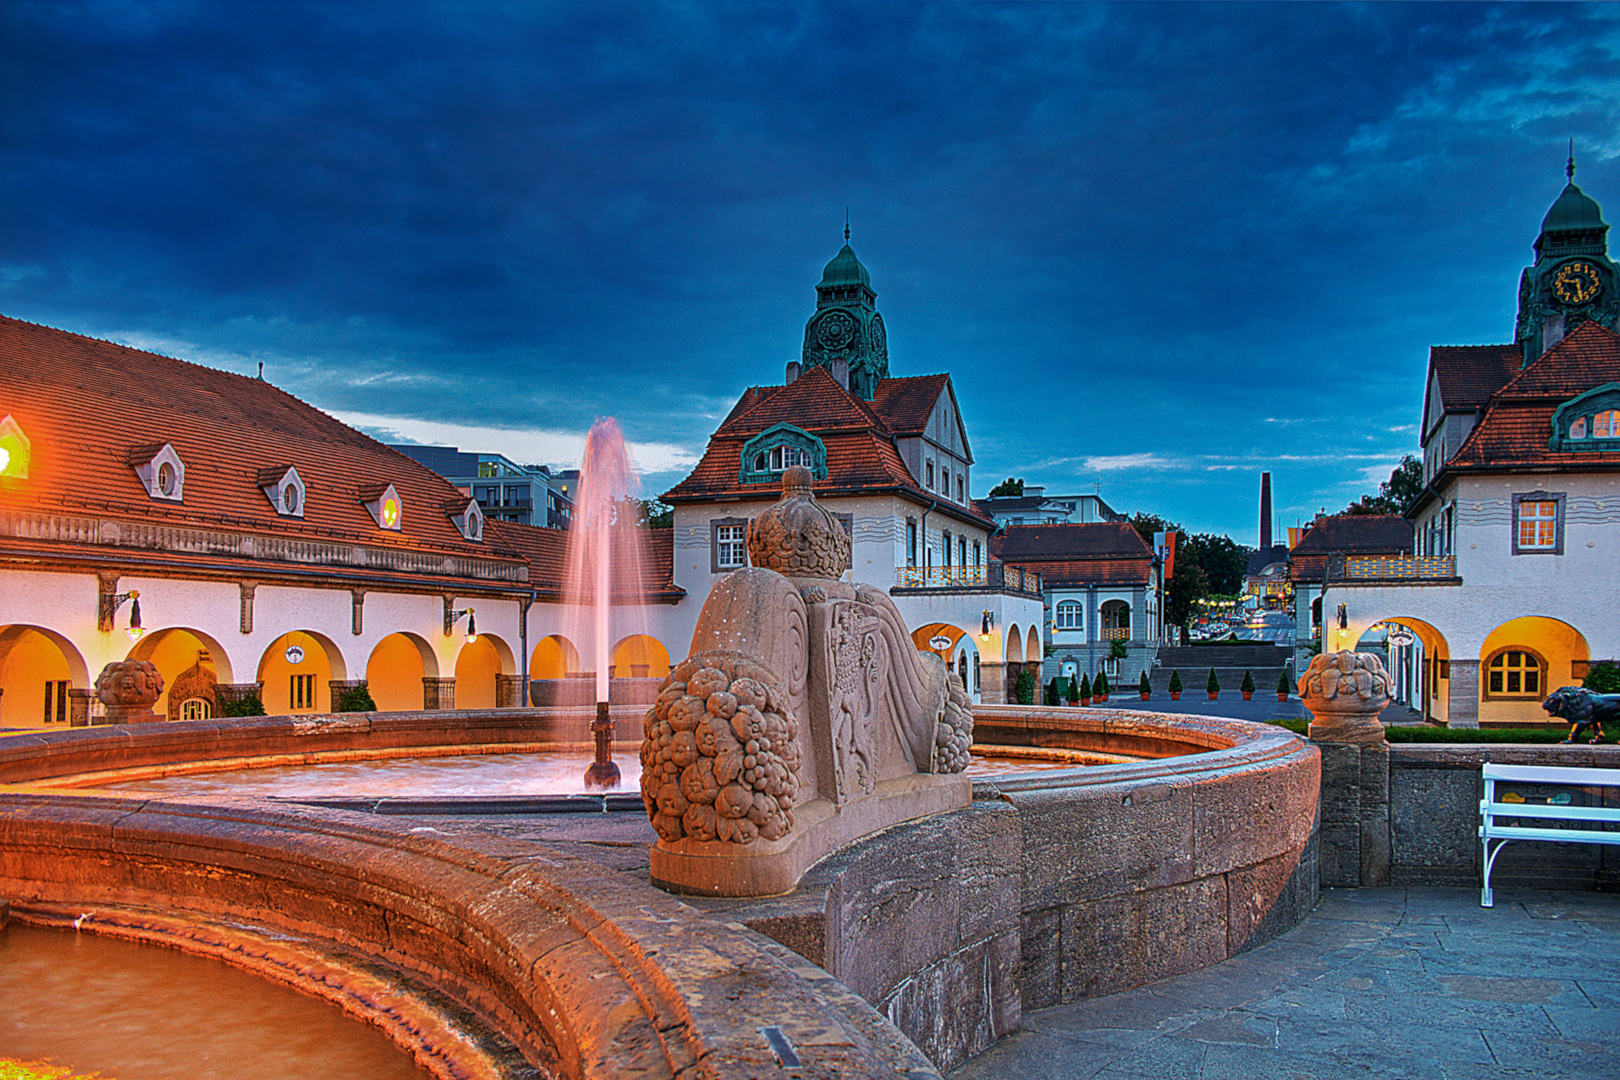 Bad Nauheim Bad Nauheim Is A Spa Town Rich In Tradition